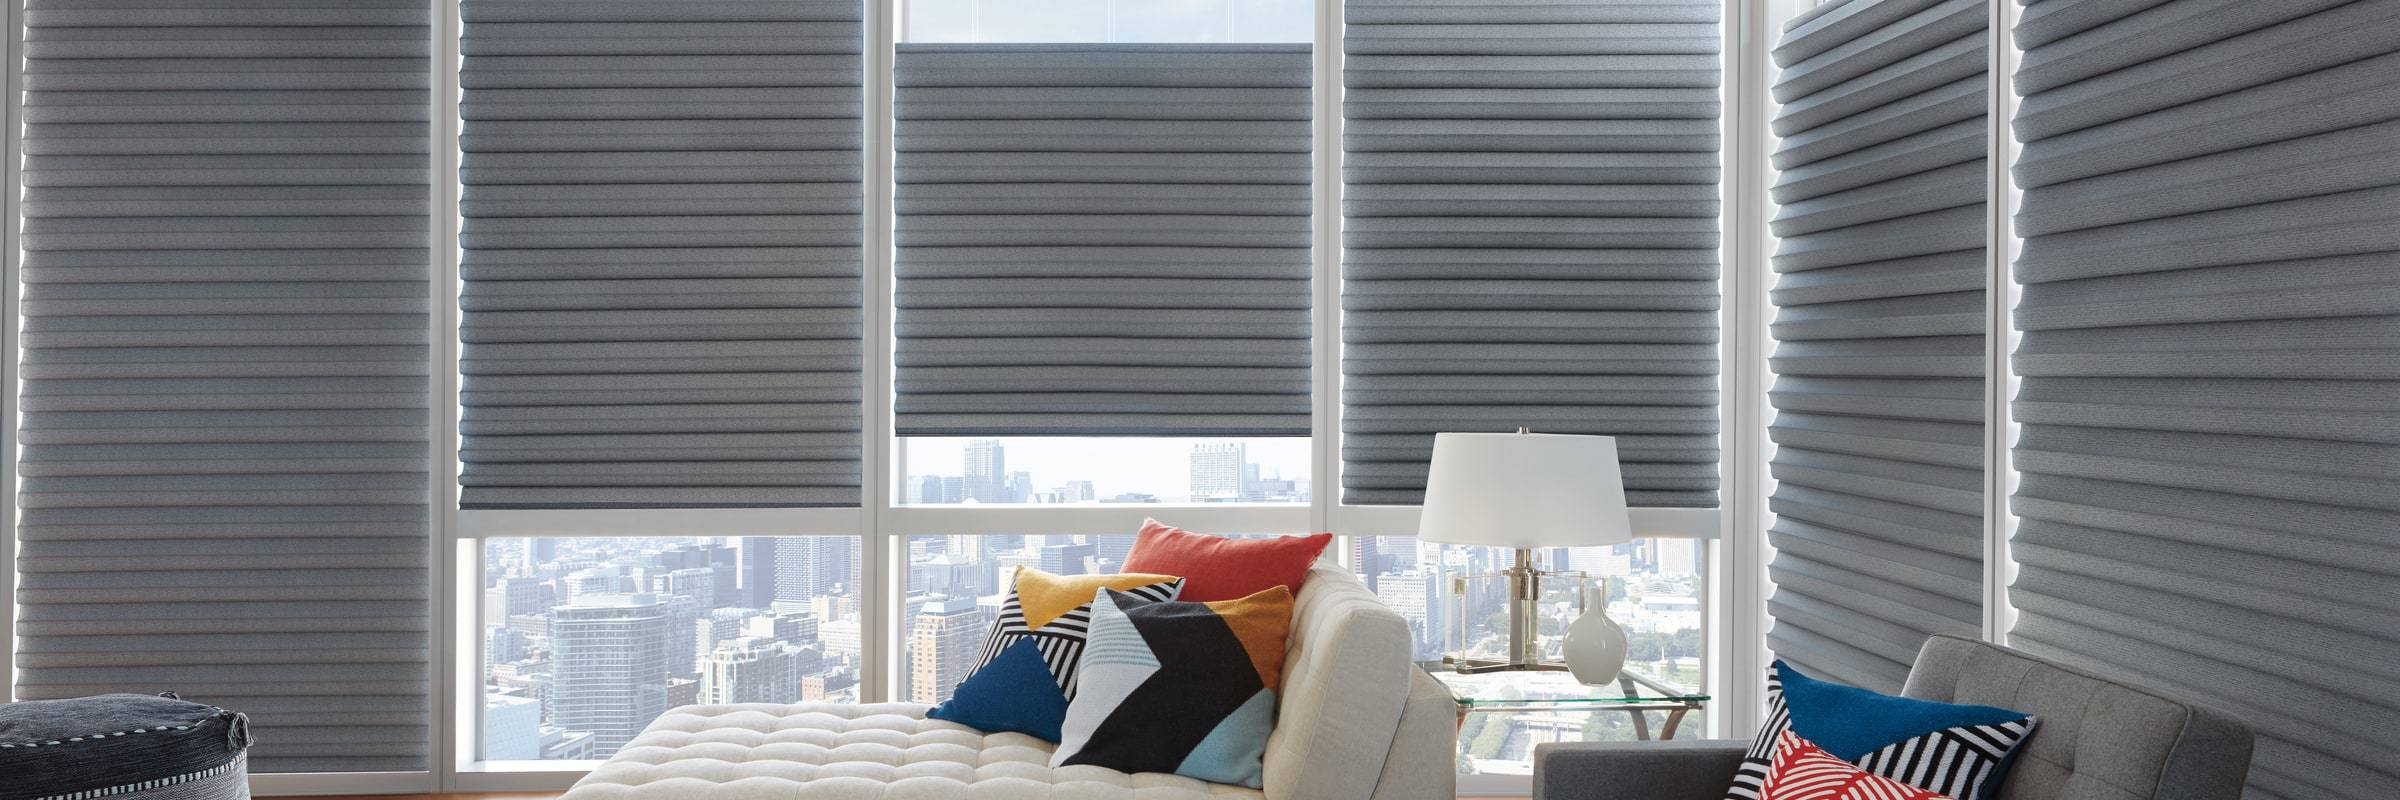 Made of woven and non-woven fabrics, Solera® Soft Shades create a fluid, sculpted look. It is a soft shade with cellular construction available in both light-filtering and room-darkening options. Learn more about Solera® Soft Shades.